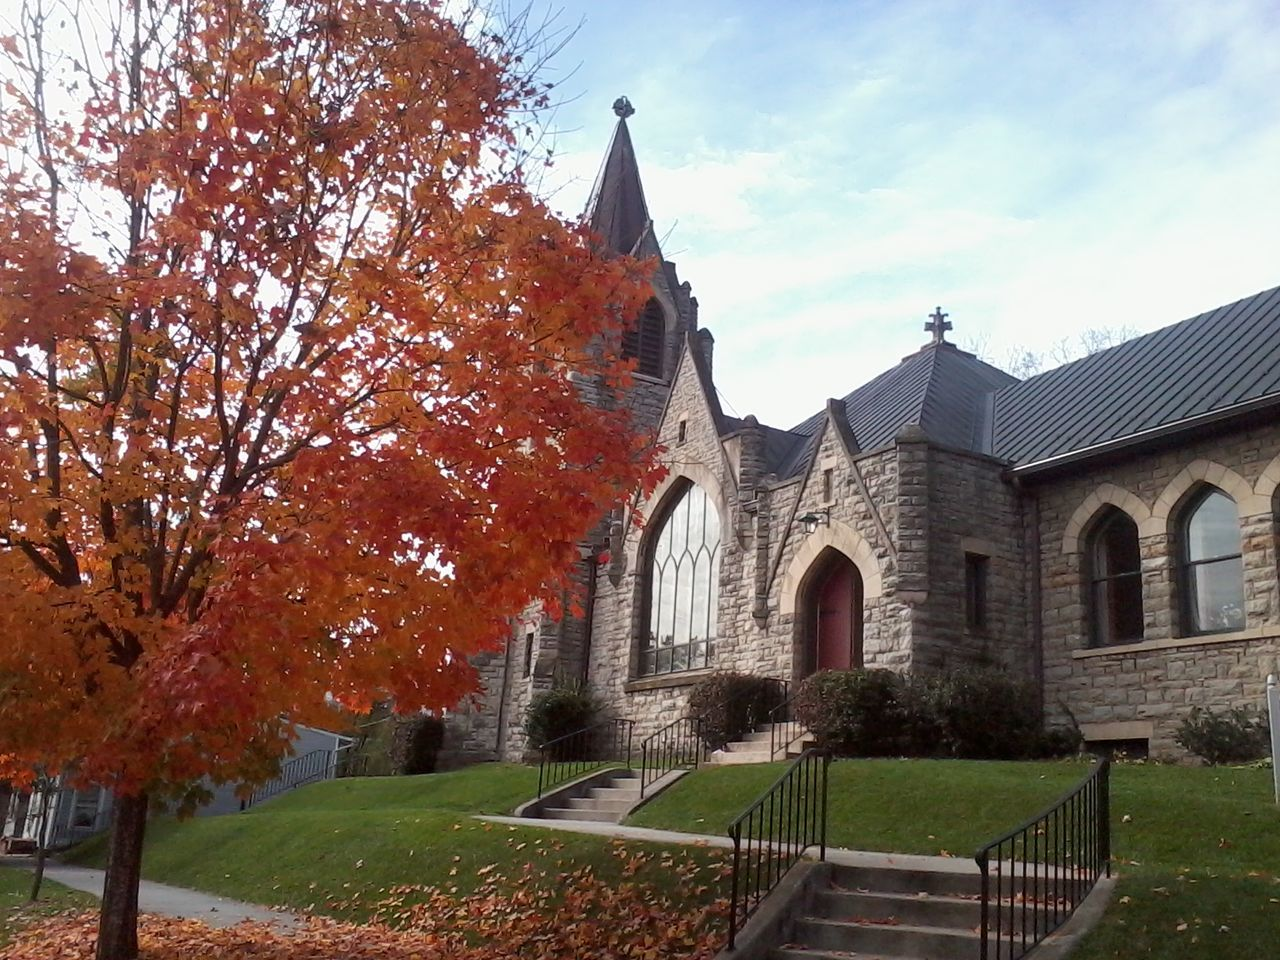 architecture, autumn, built structure, building exterior, tree, change, day, religion, place of worship, outdoors, no people, leaf, sky, grass, spirituality, nature, growth, beauty in nature